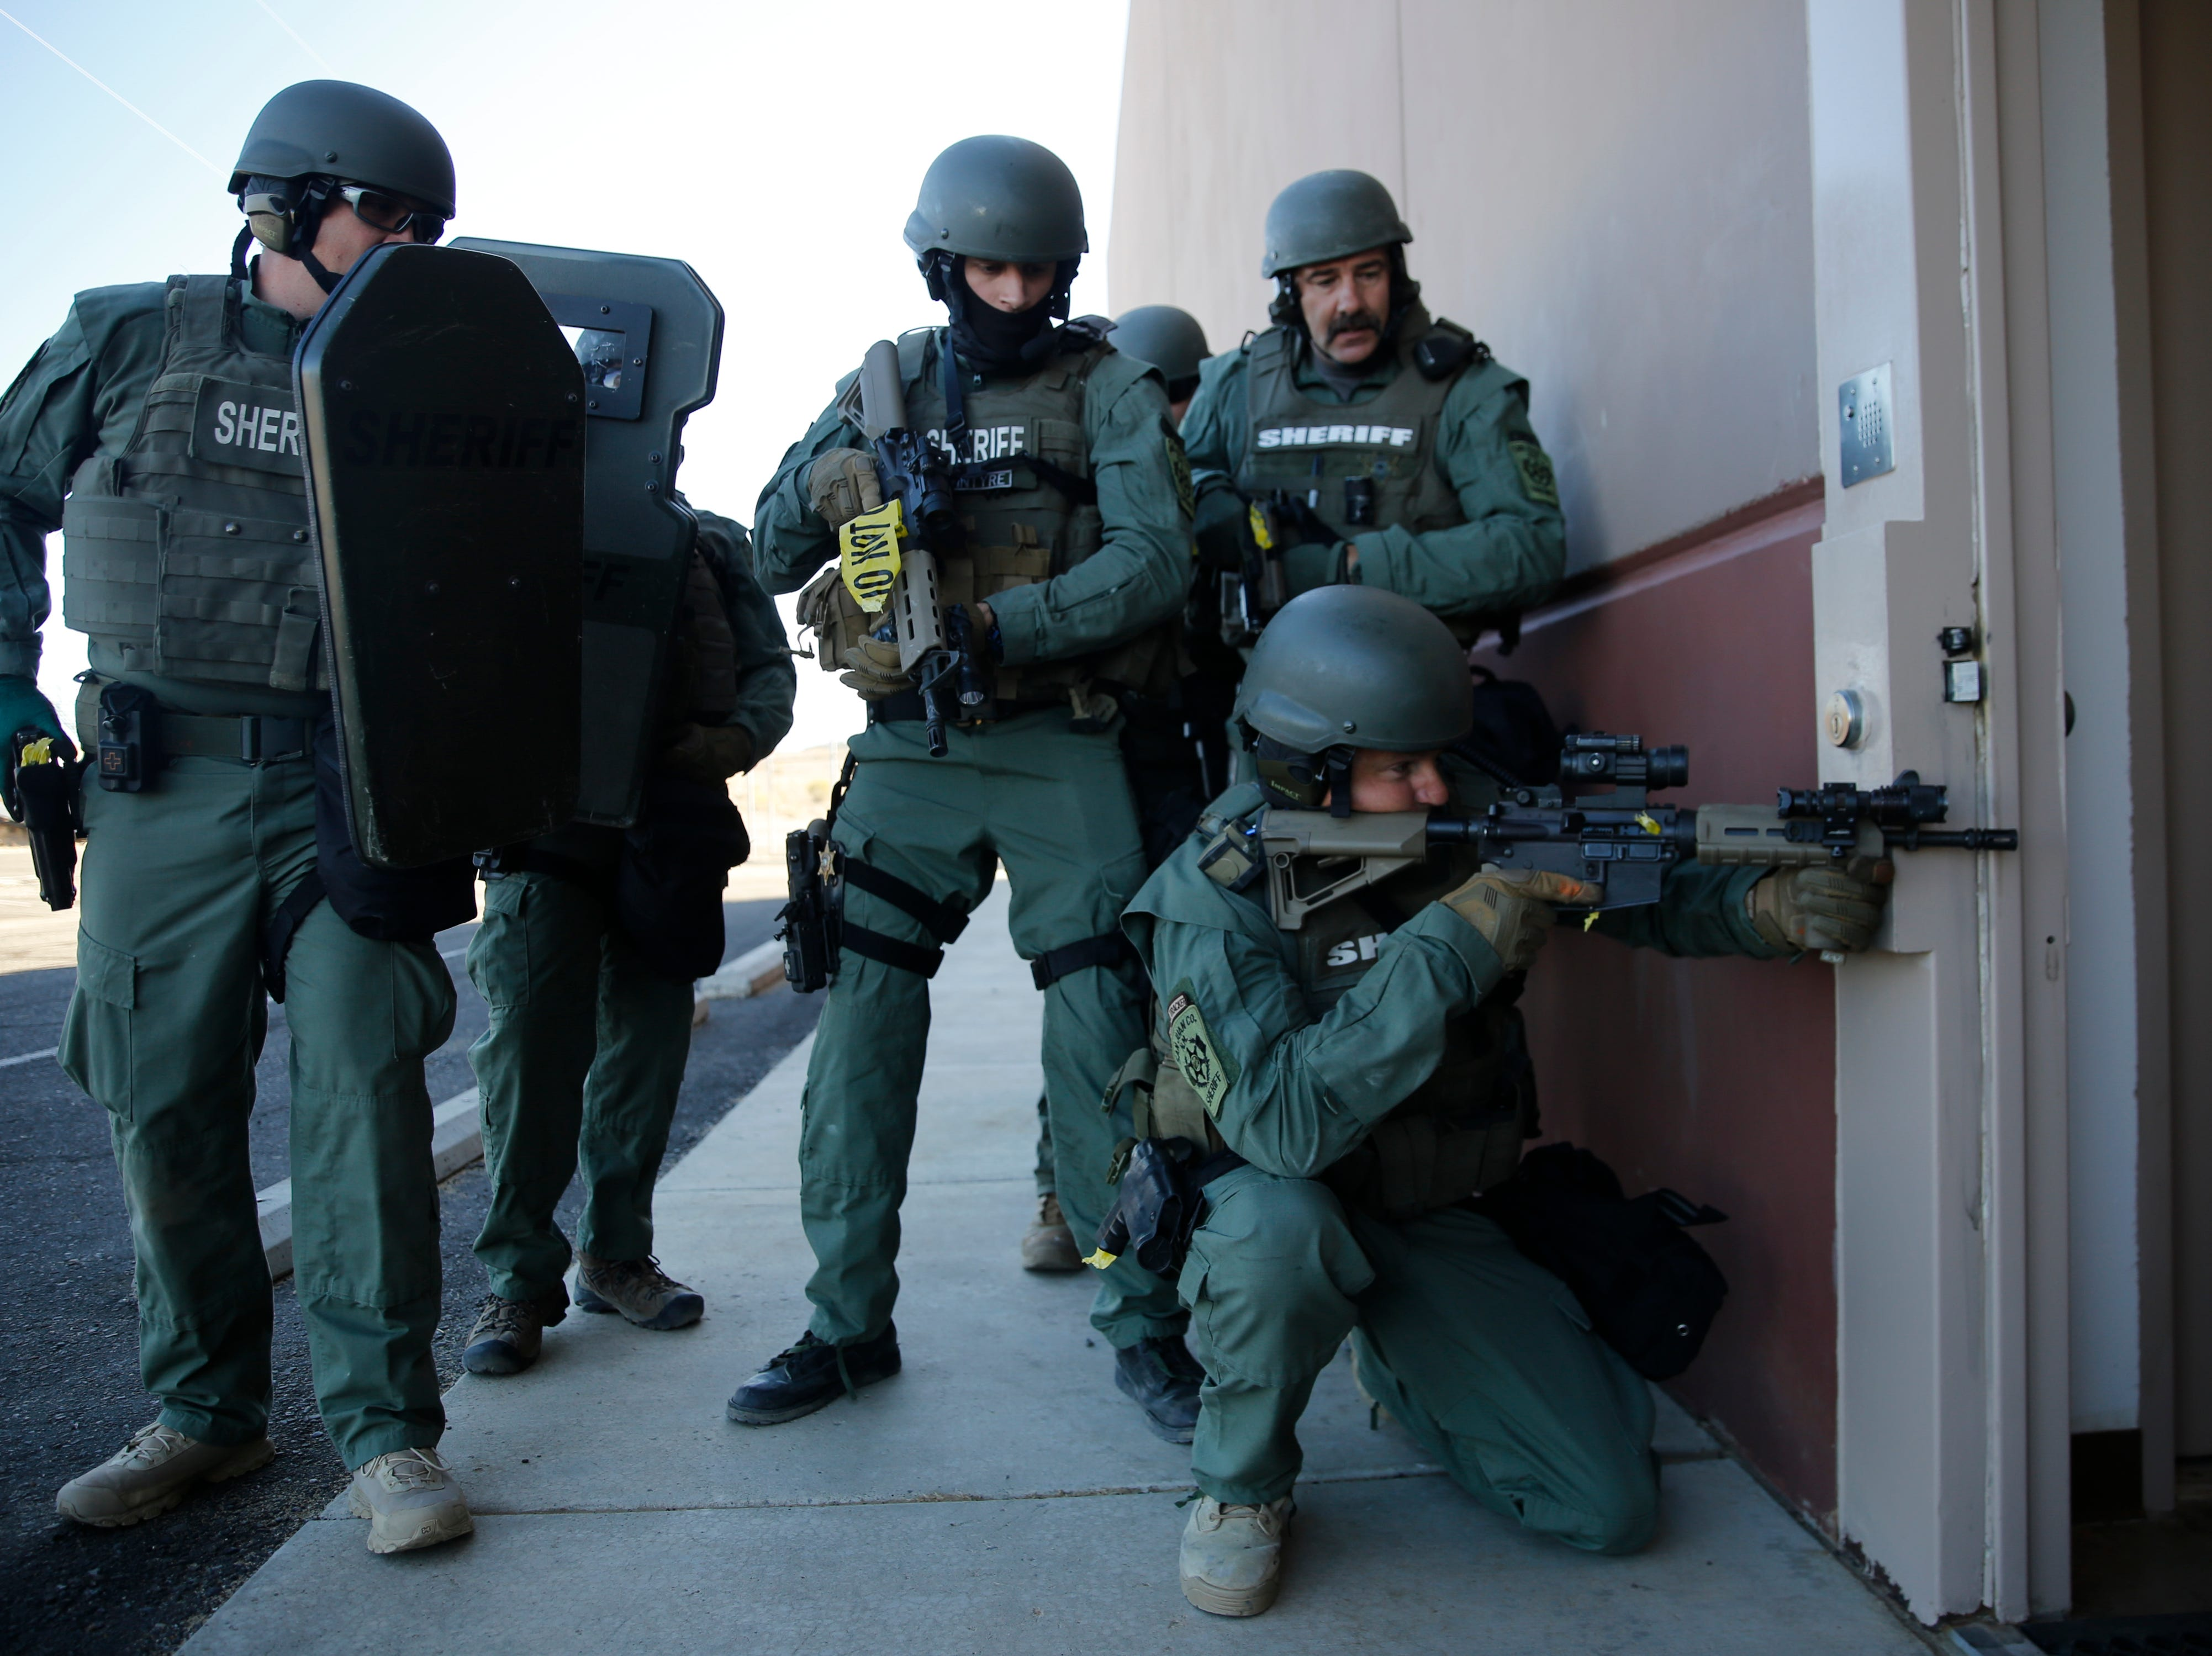 San Juan County Sheriff's Office SWAT team deputies stage at the side entrance of the San Juan County Detention Center, Wednesday, Sept. 12, 2018 during a simulated prison riot in Farmington.